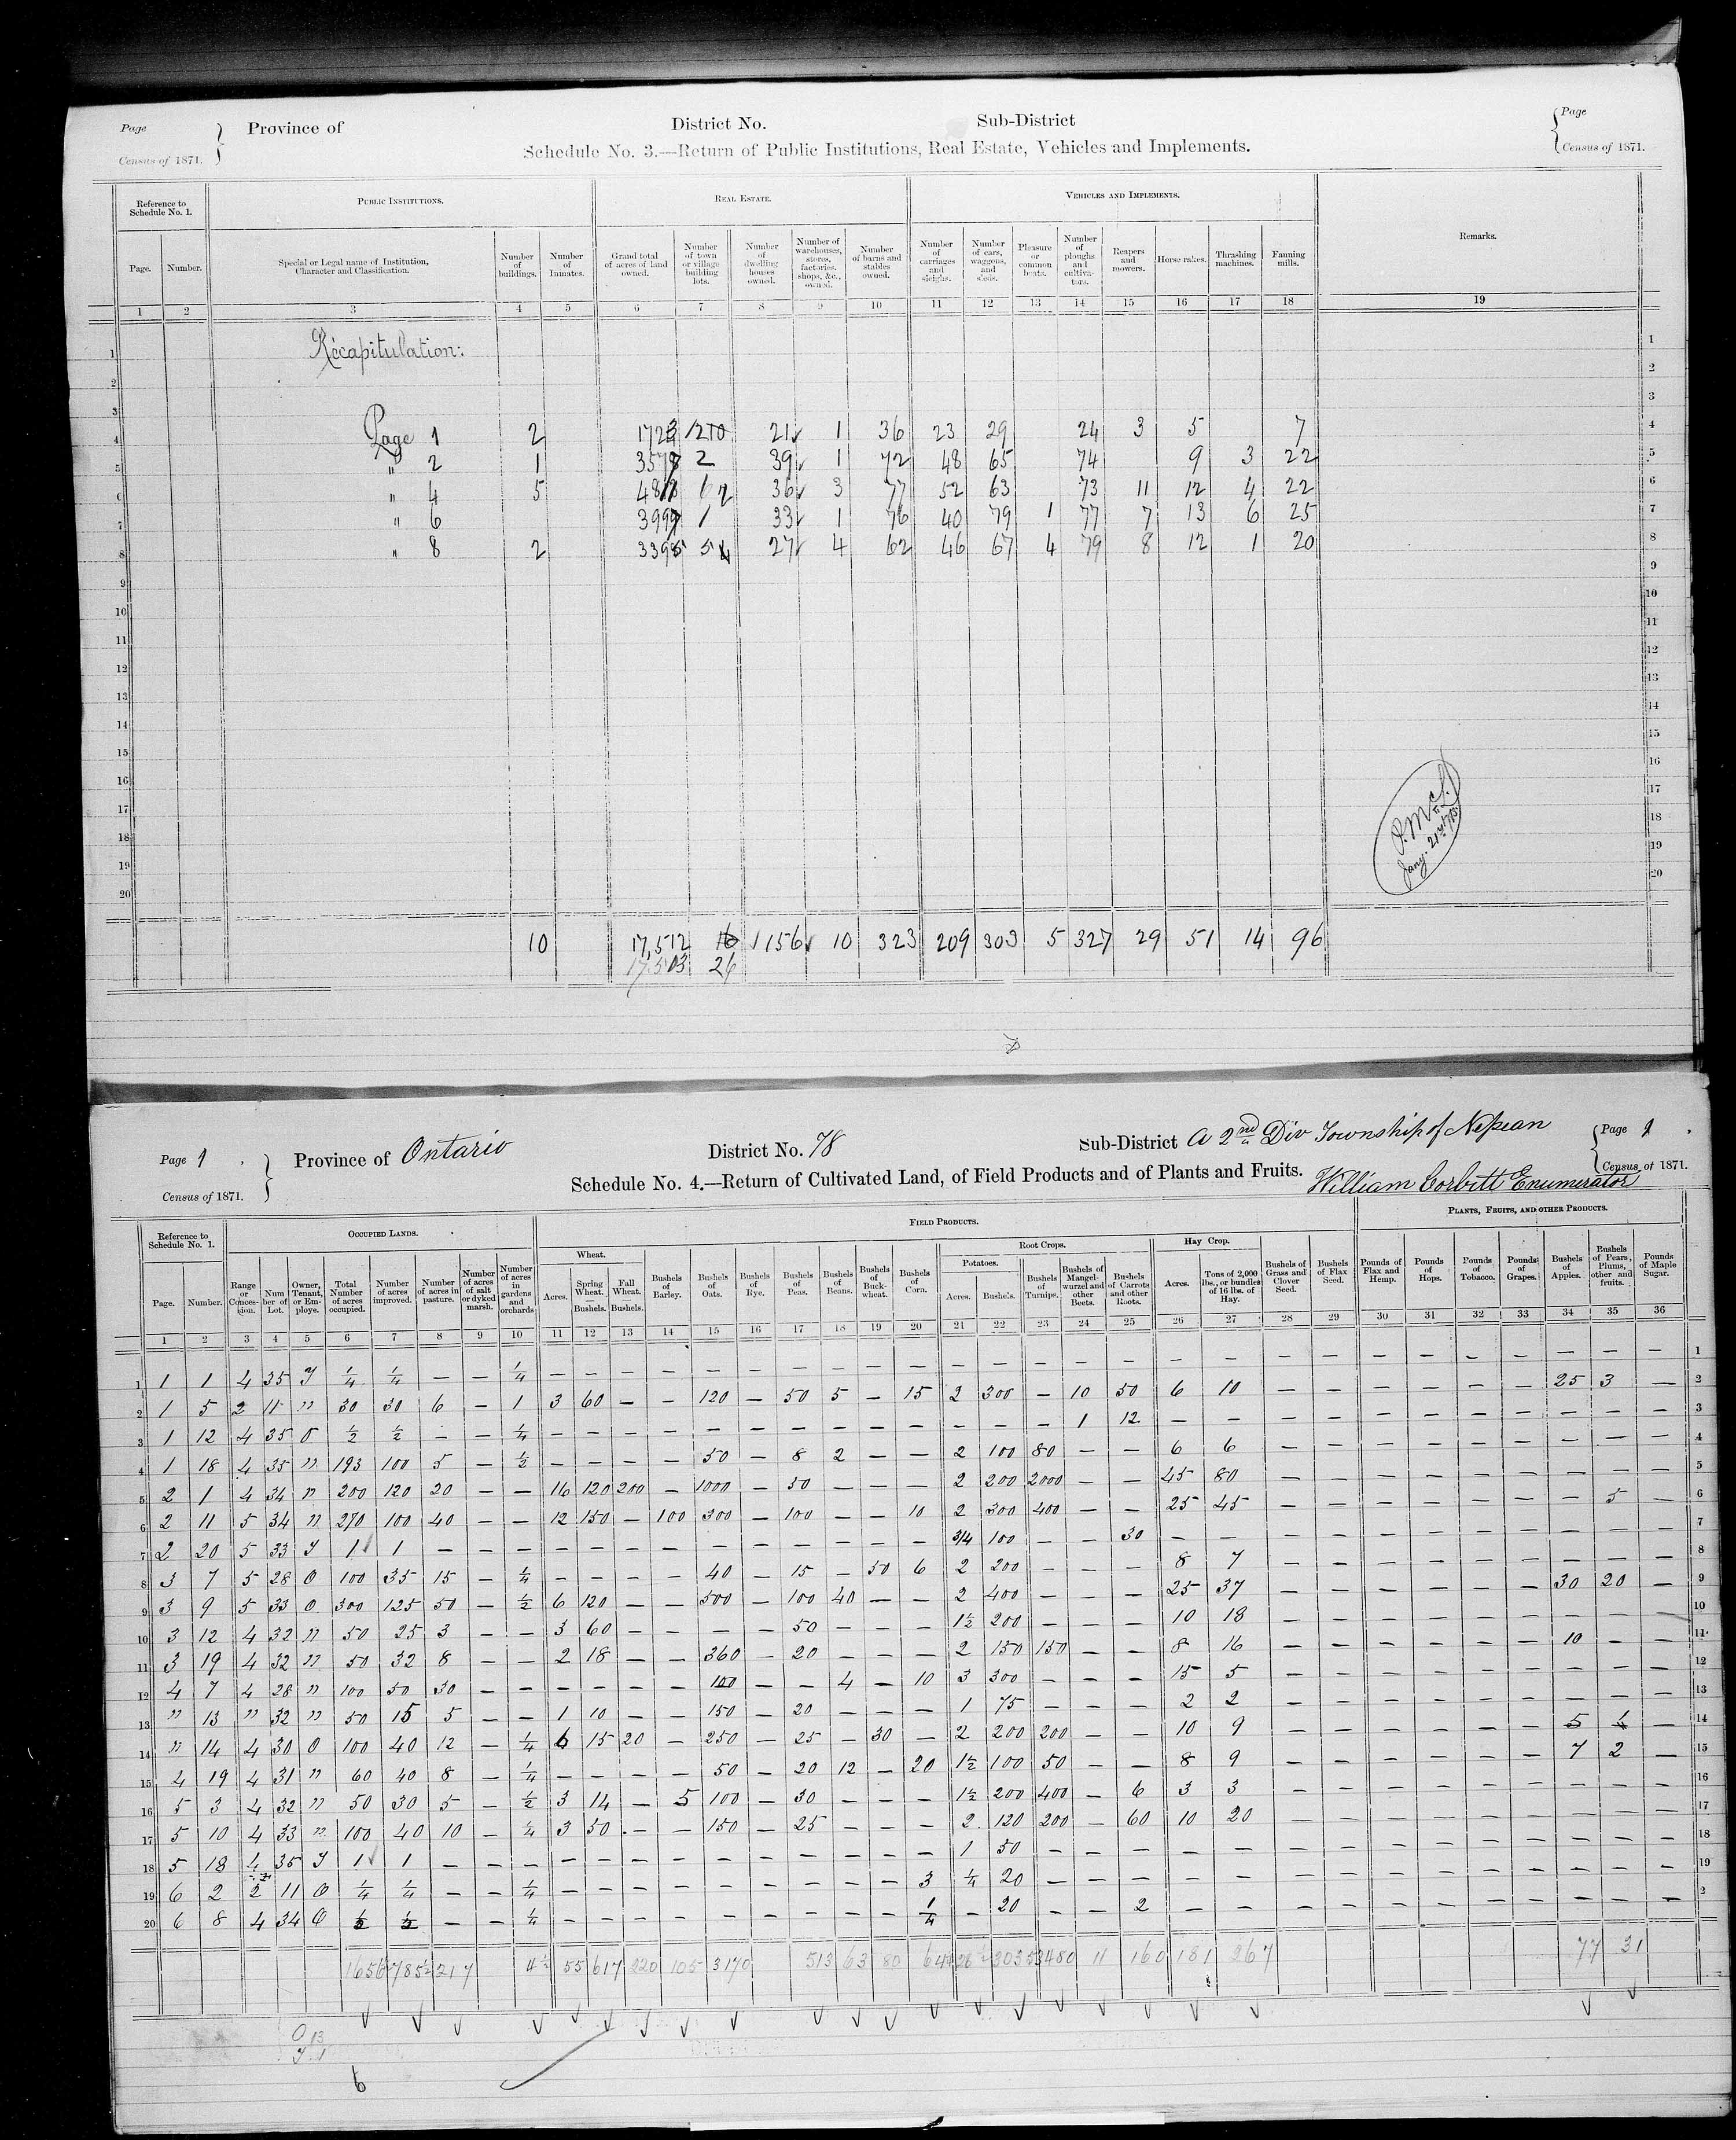 Title: Census of Canada, 1871 - Mikan Number: 142105 - Microform: c-10015